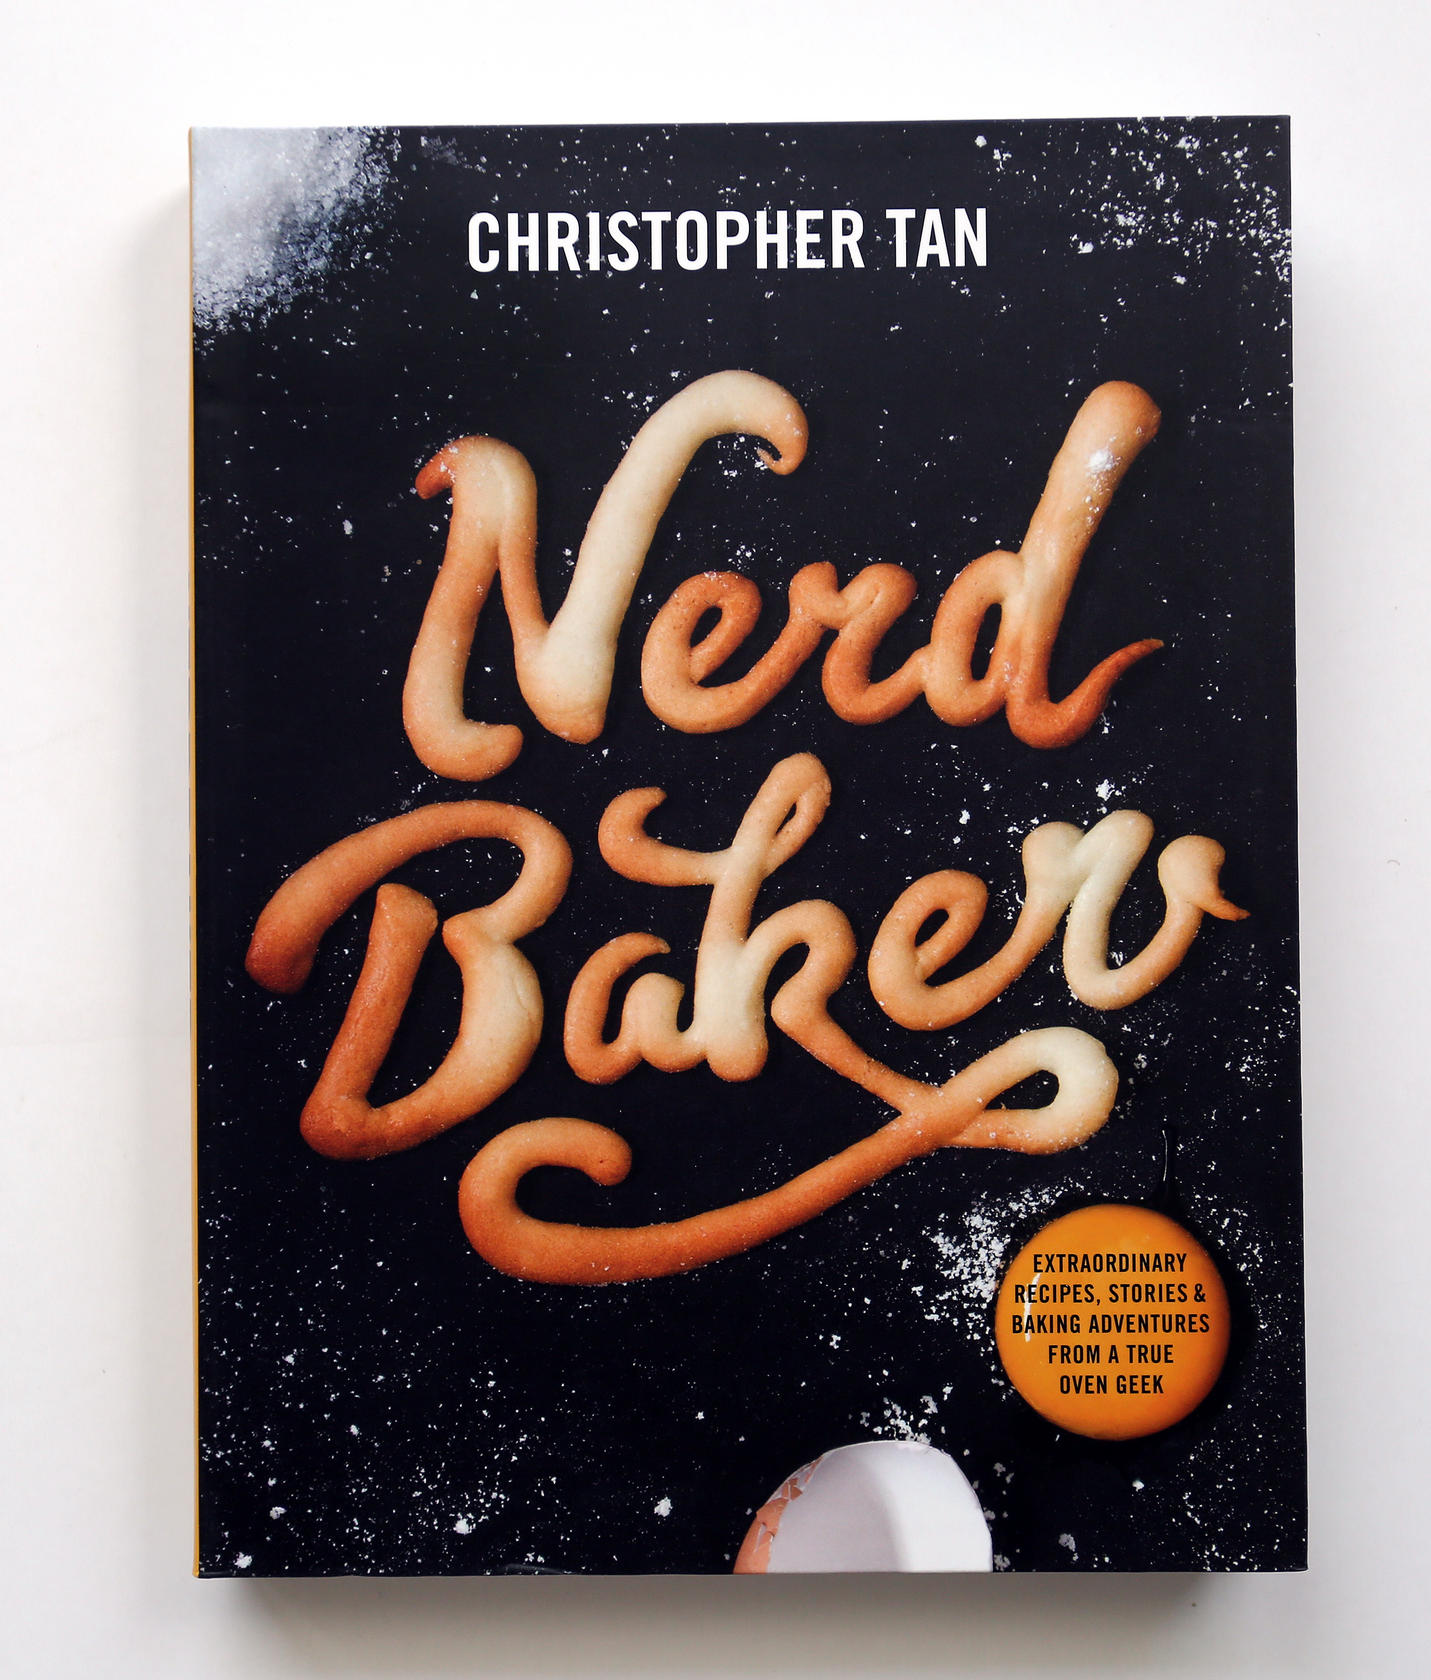 Foodbook: Nerd Baker, by Christopher Tan, celebrates the